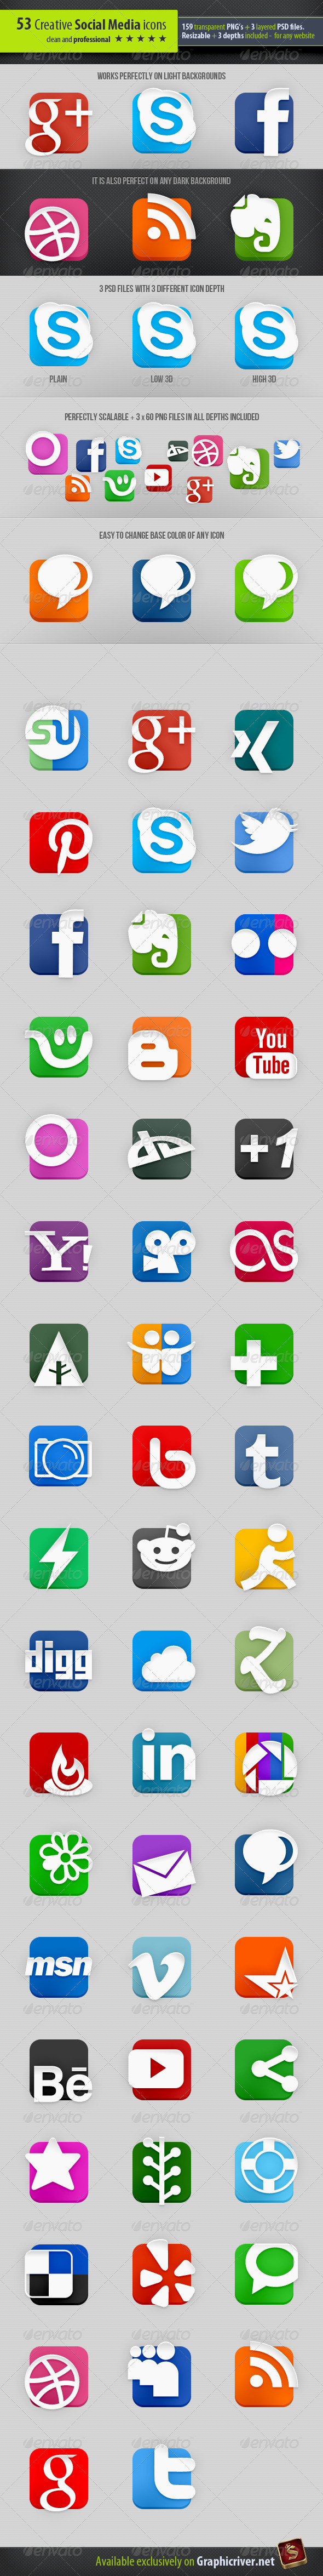 GraphicRiver 53 Creative Social Media Icons 2585079